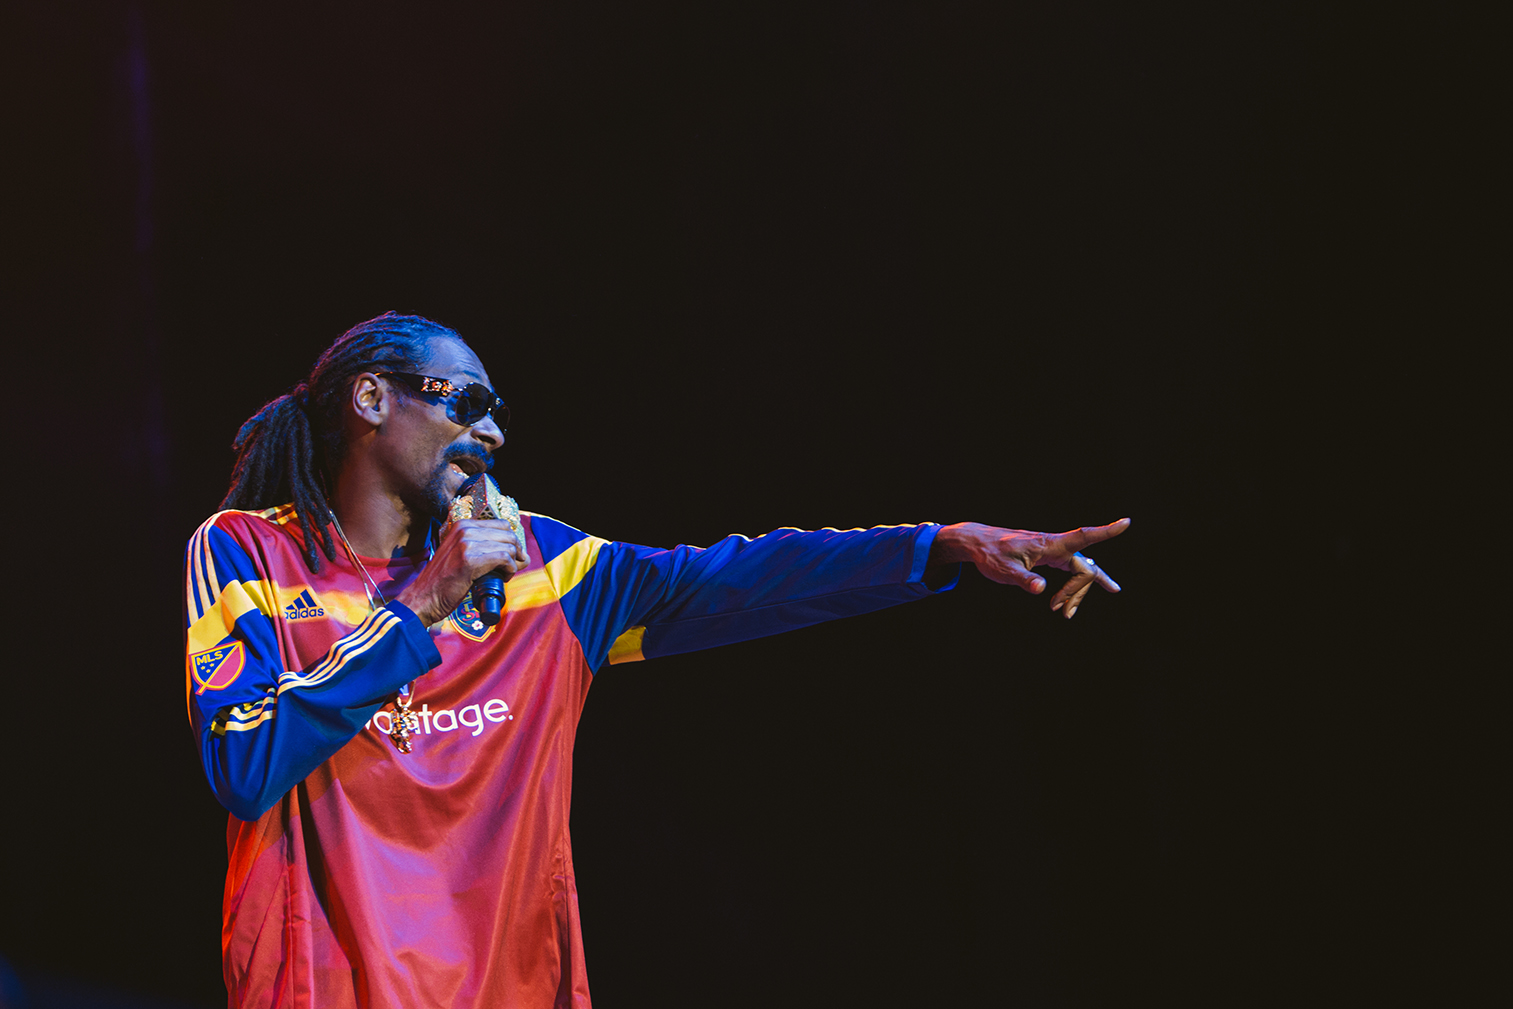 snoop-dogg-pointing-finger-utah-salt-lake-city-real.jpg